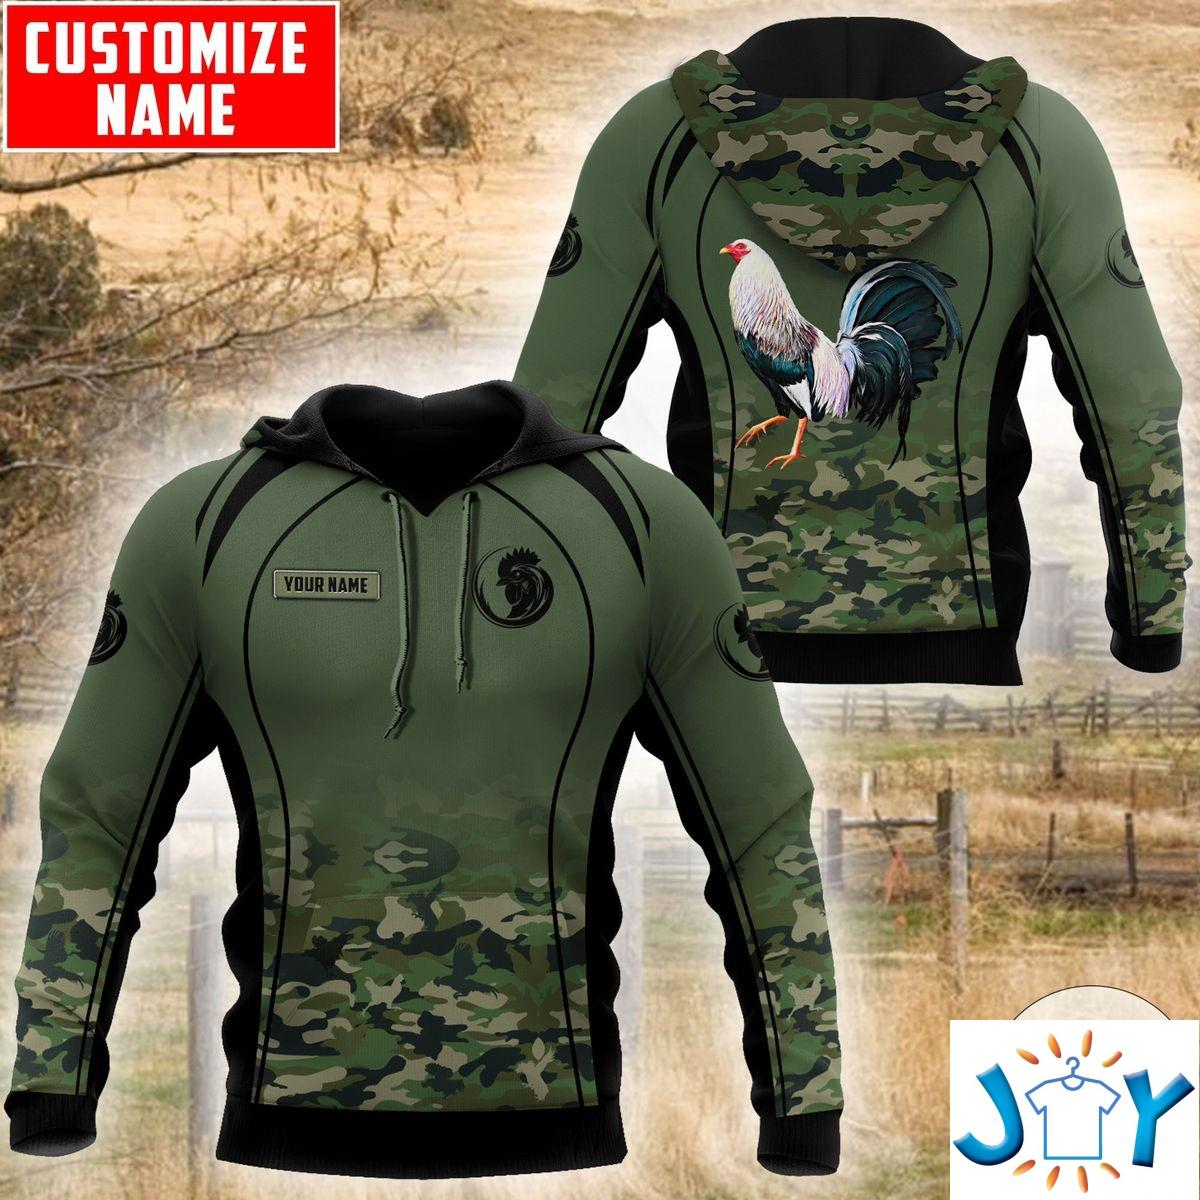 Personalized Rooster Camouflage 3D Hoodie